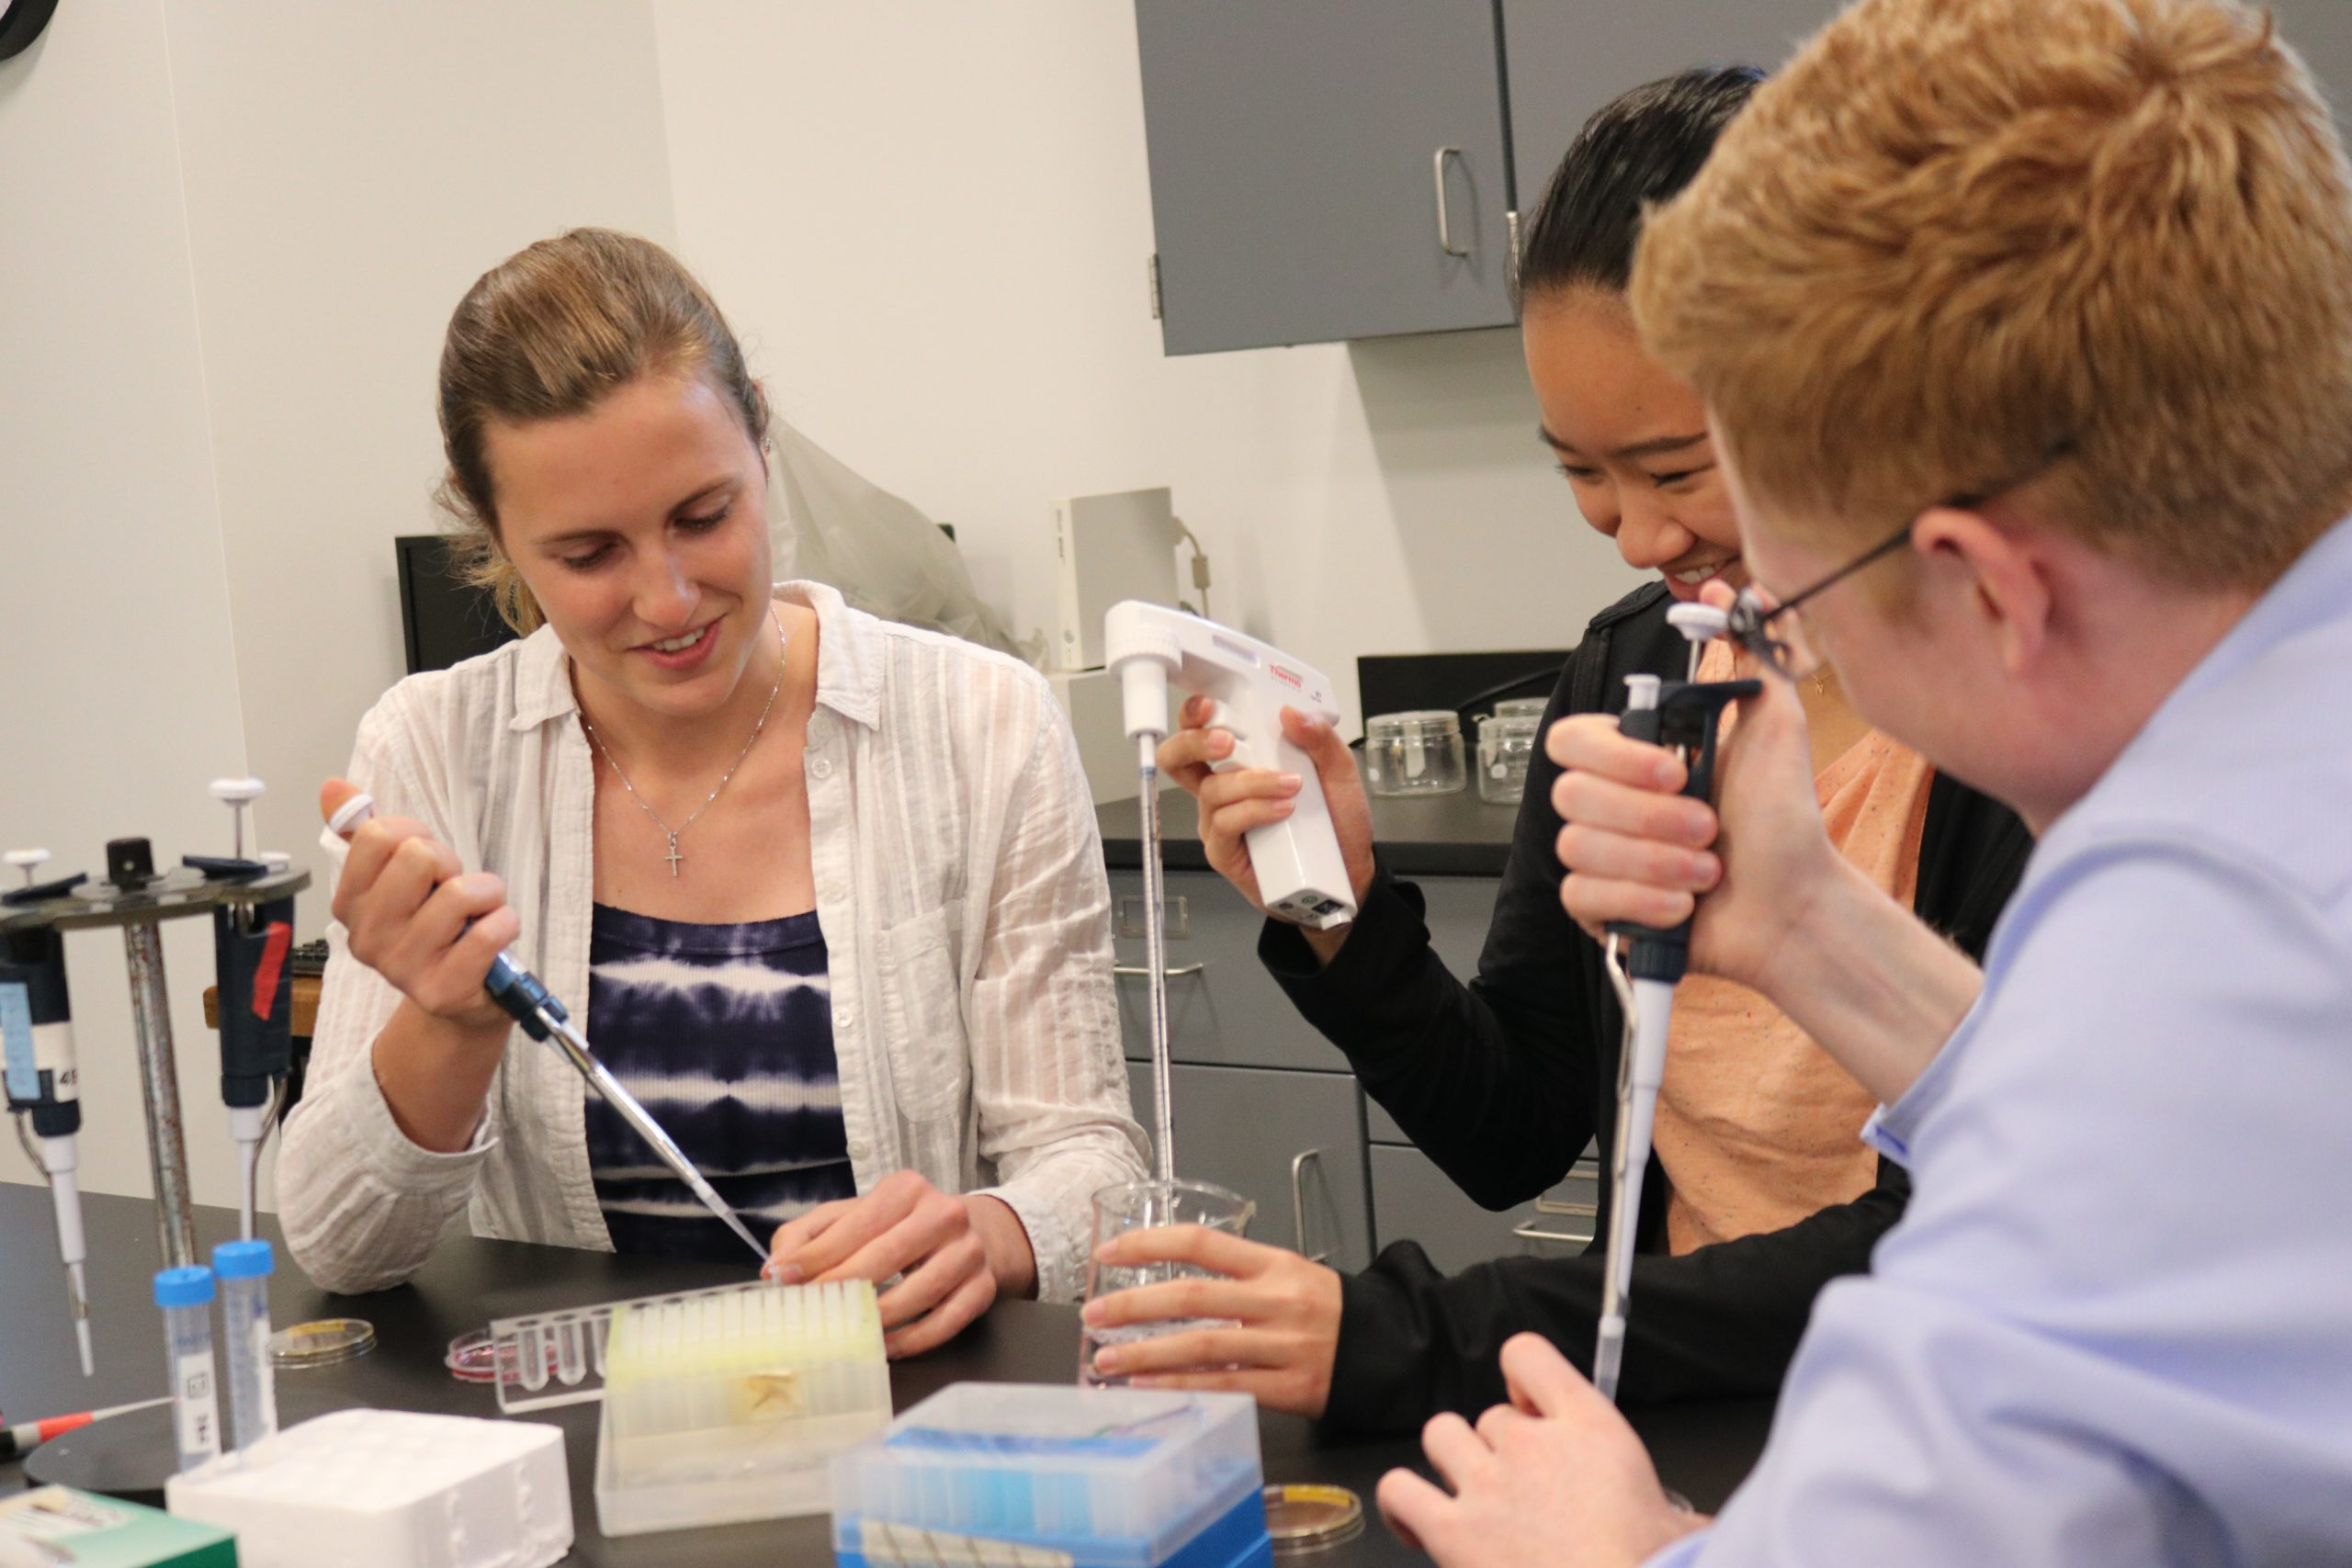 Three students working in a science lab at the Winona campus of Saint Mary's University of Minnesota.